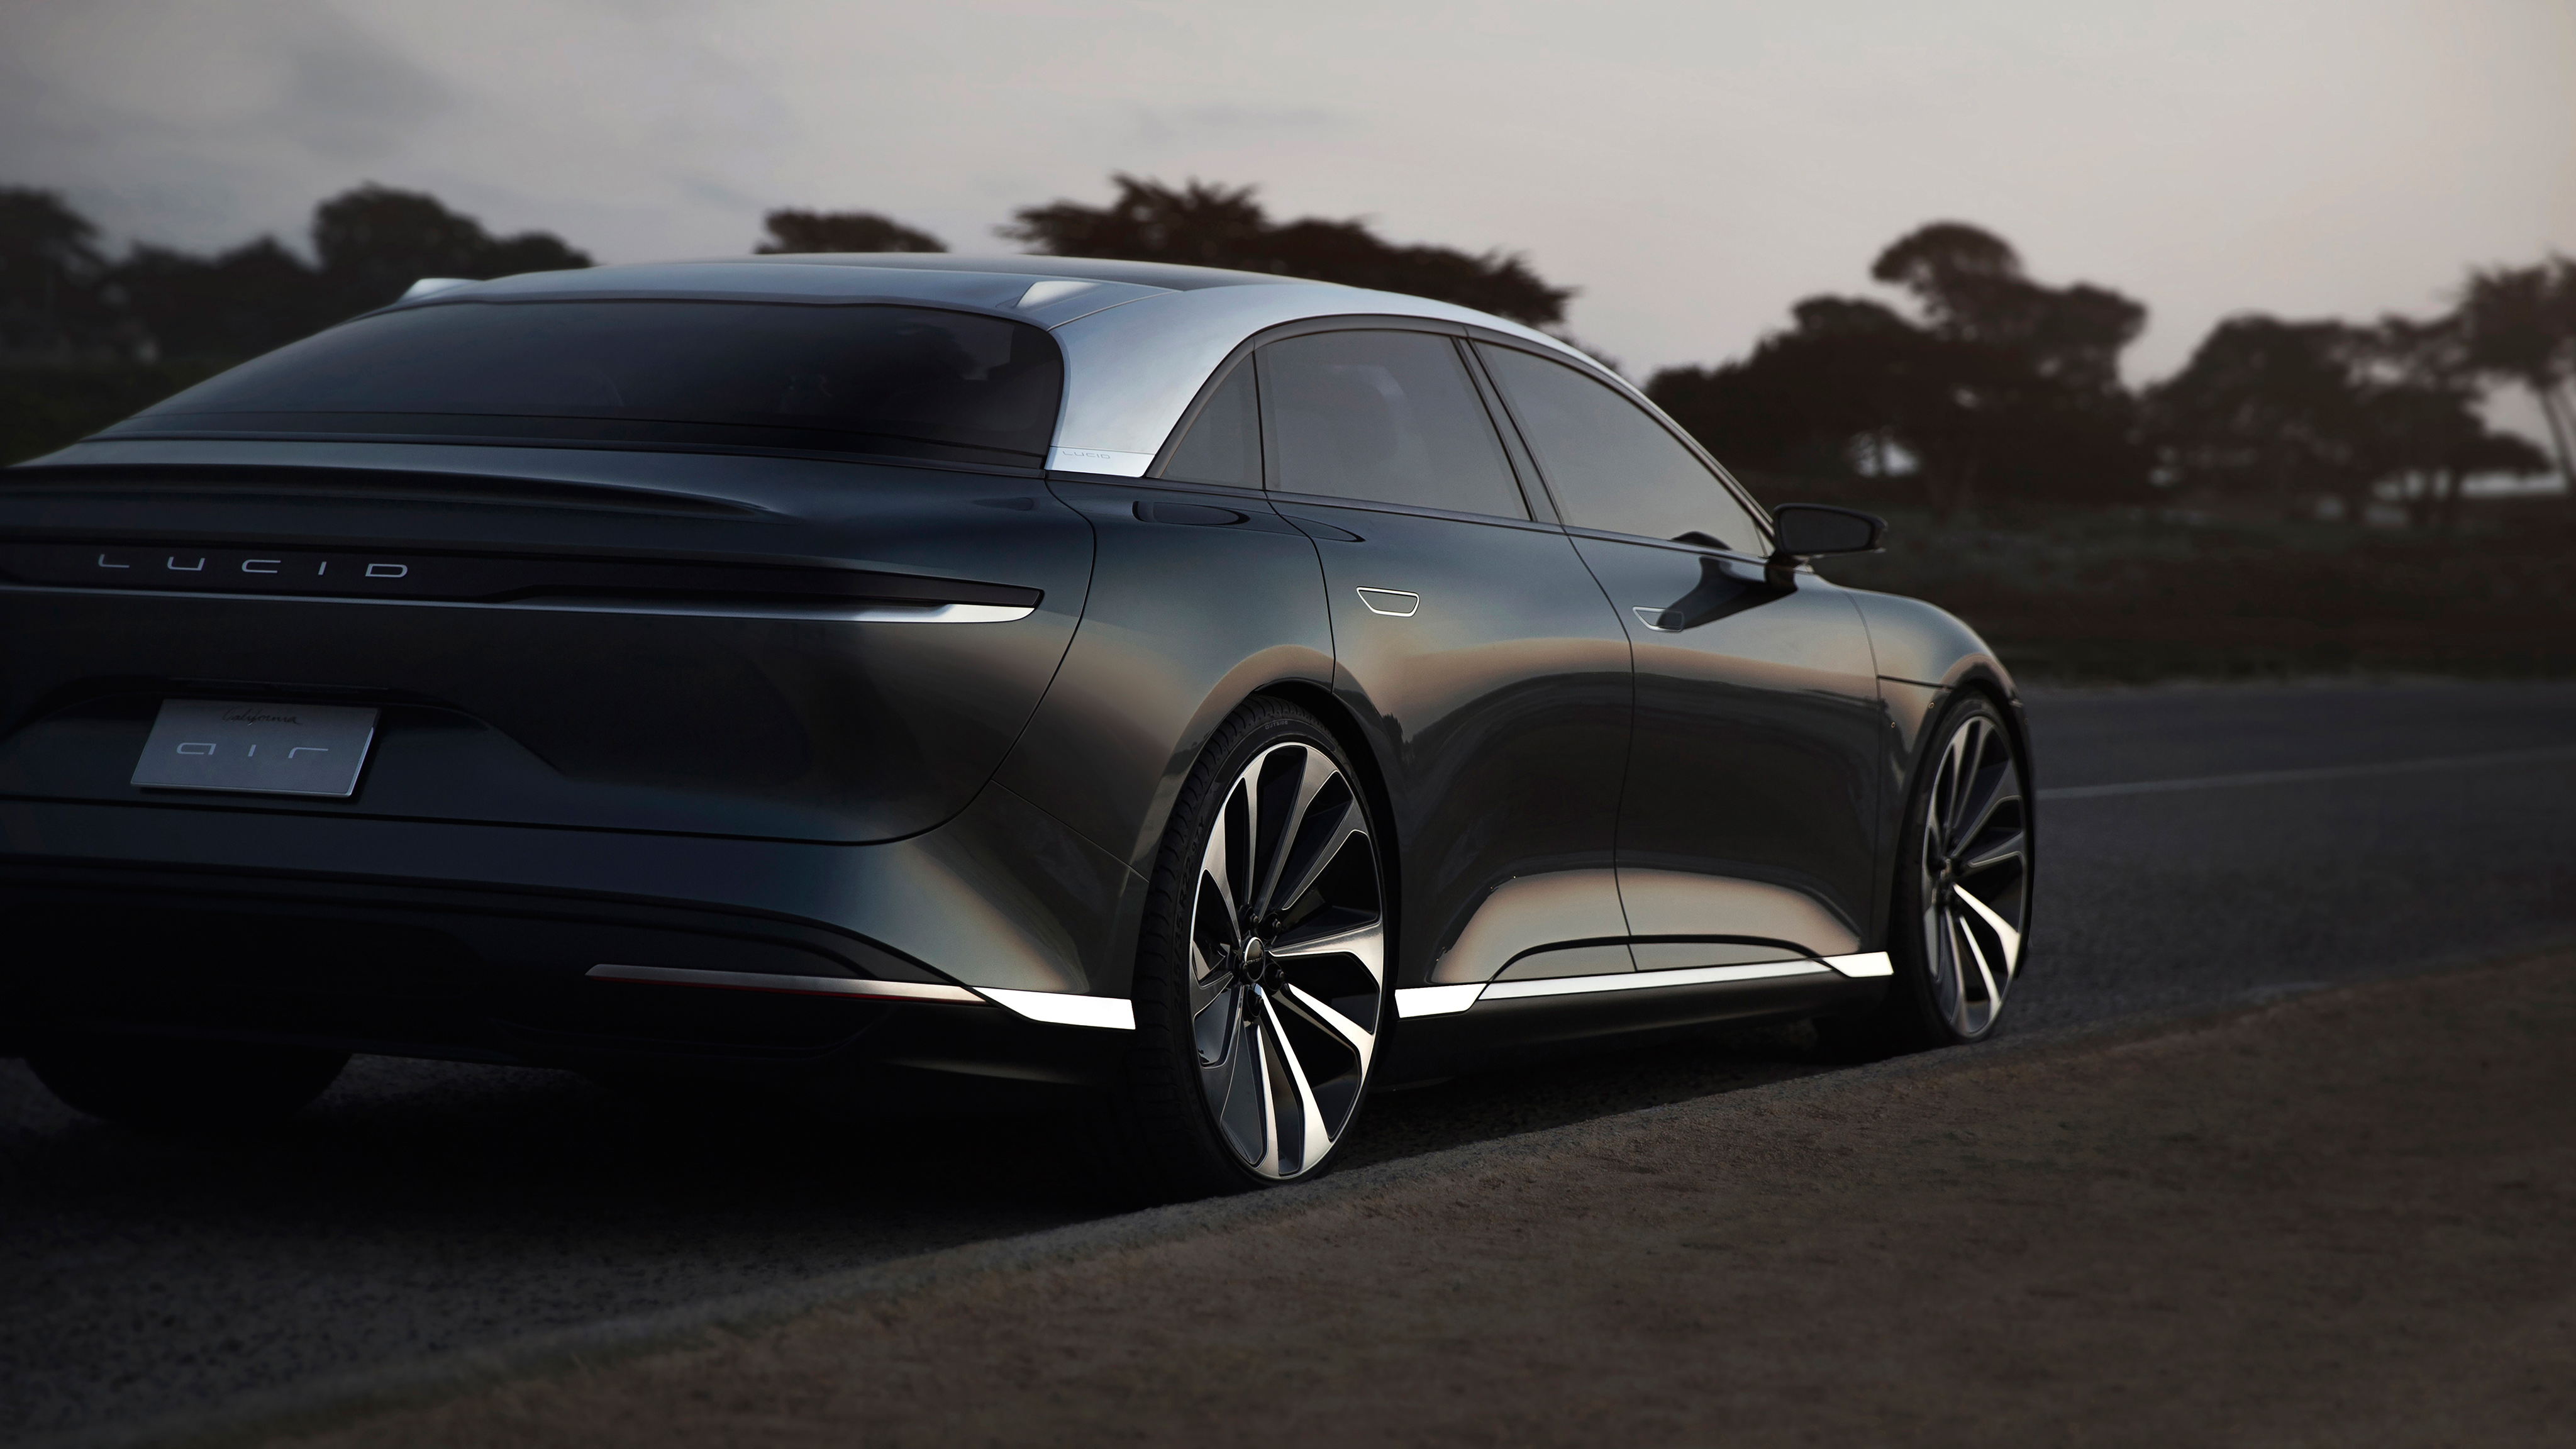 Mercedes Car Wallpapers For Windows 7 Lucid Air Prototype 7 Wallpaper Hd Car Wallpapers Id 8223